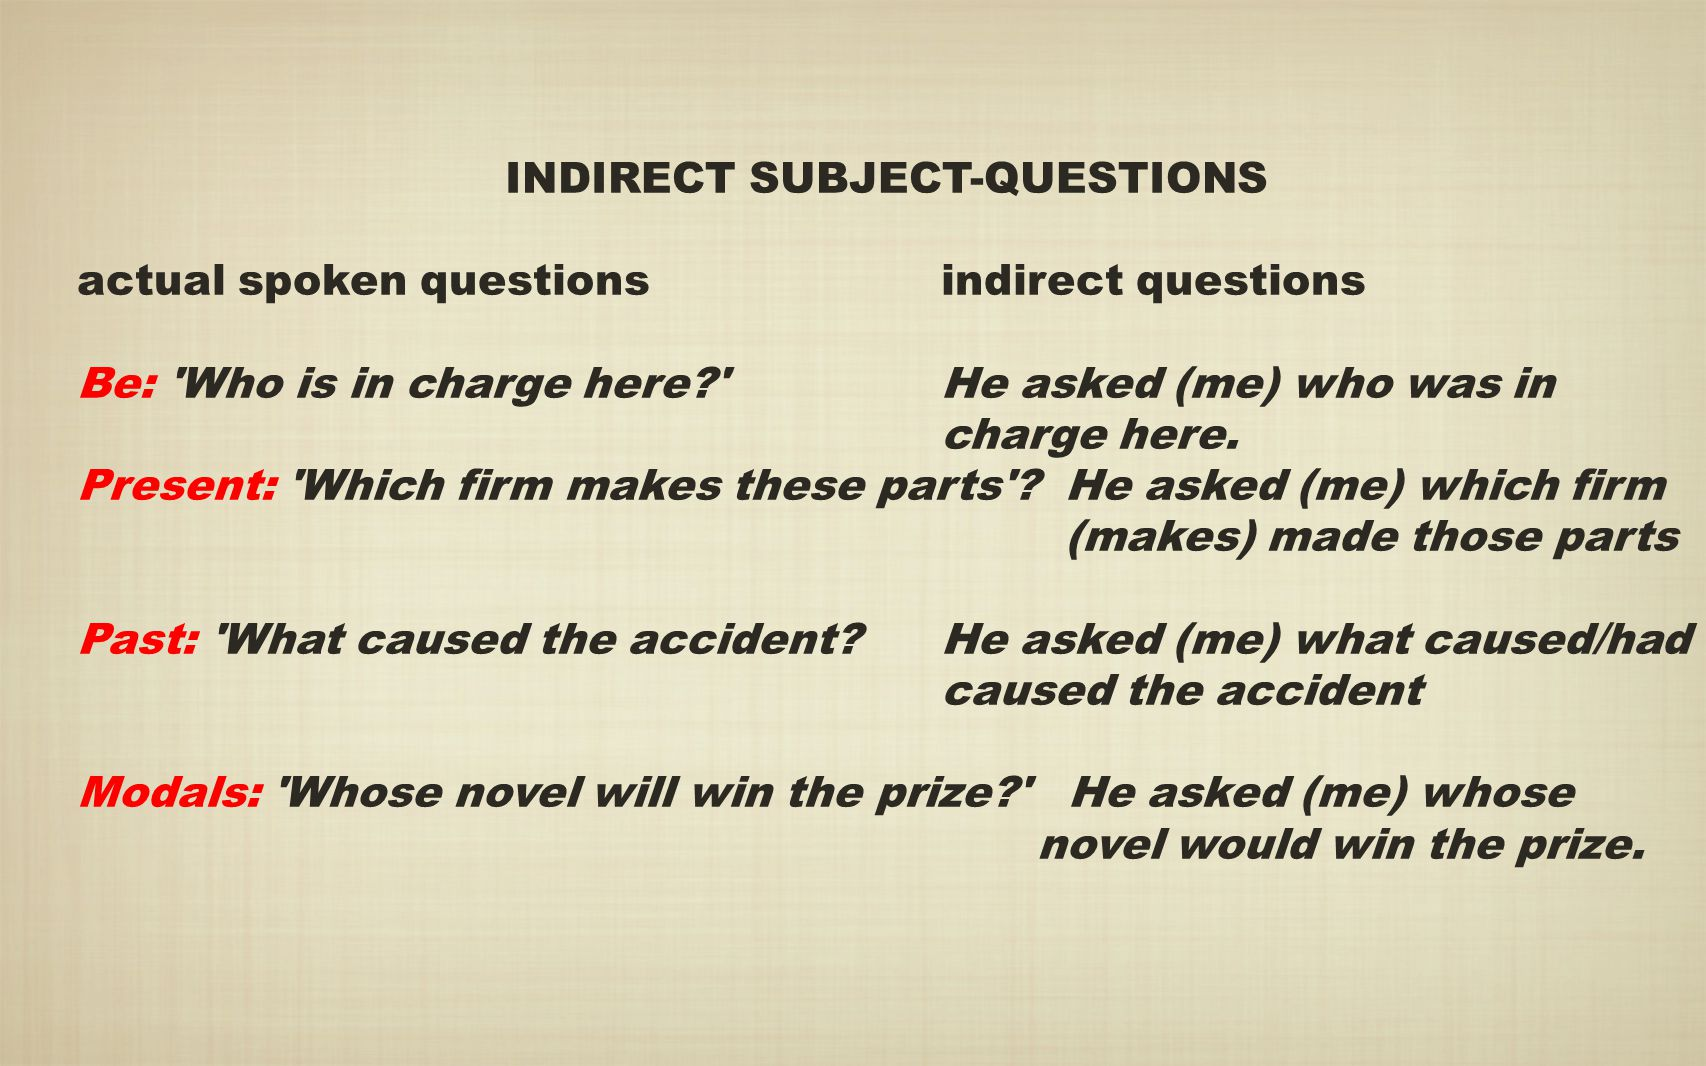 INDIRECT SUBJECT-QUESTIONS